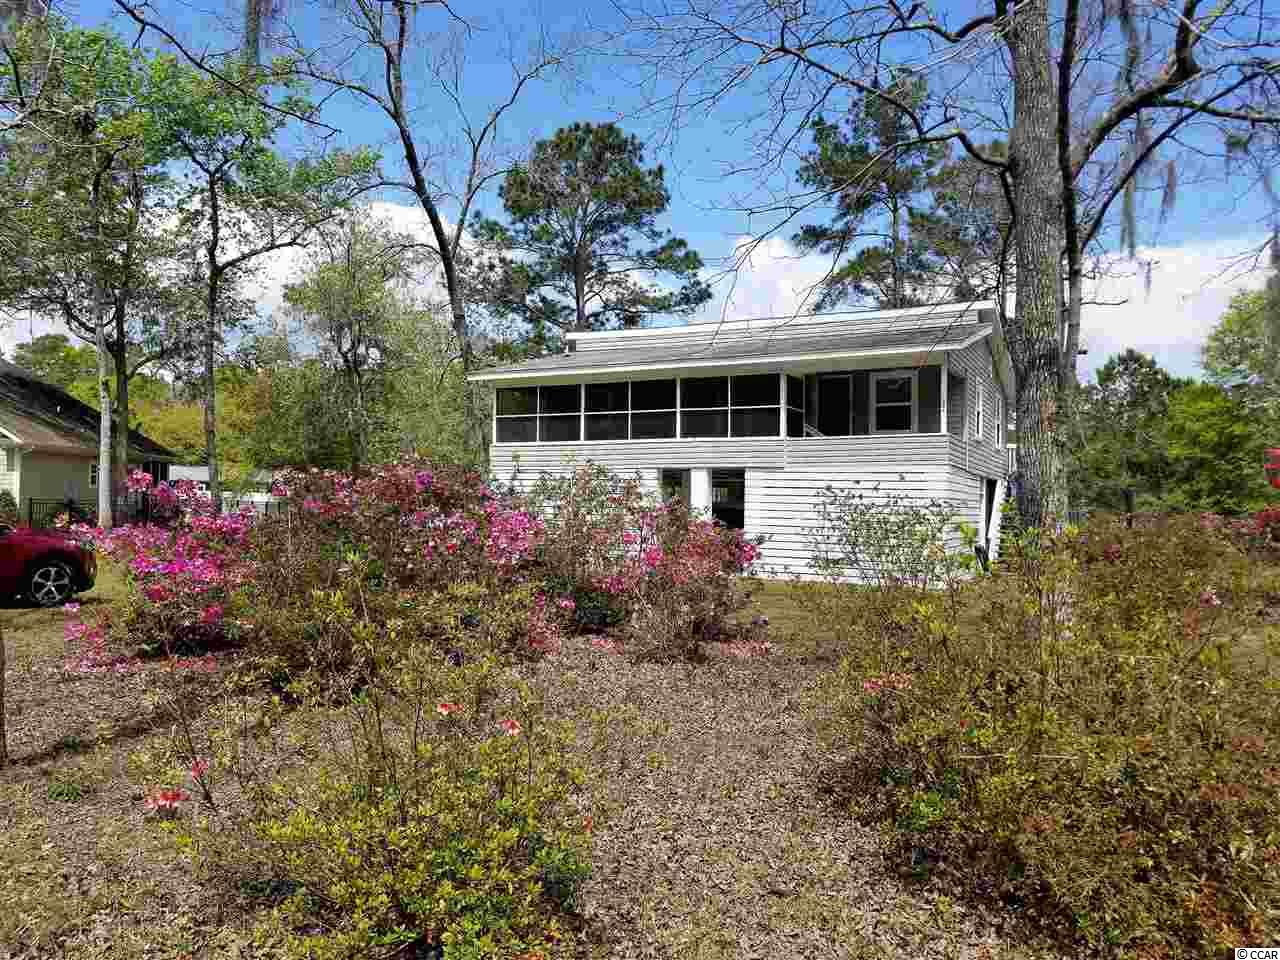 Want some peace and quiet close to the Murrells Inlet Marshwalk and ocean? Come see this almost 1/2 acre lot with beautiful old azaleas and moss draped trees abound. This cute two bedroom raised beach home has been remodeled and upgraded with brand new kitchen counters and stainless steel appliances, new light fixtures and fans, new bathroom vanity with new washer/dryer, new blinds, all new laminate and carpet flooring, newly painted - inside and out, and the garage area has been semi-enclosed. Disclaimer: All square footage is approximate and is not guaranteed. Buyer is responsible for verification.